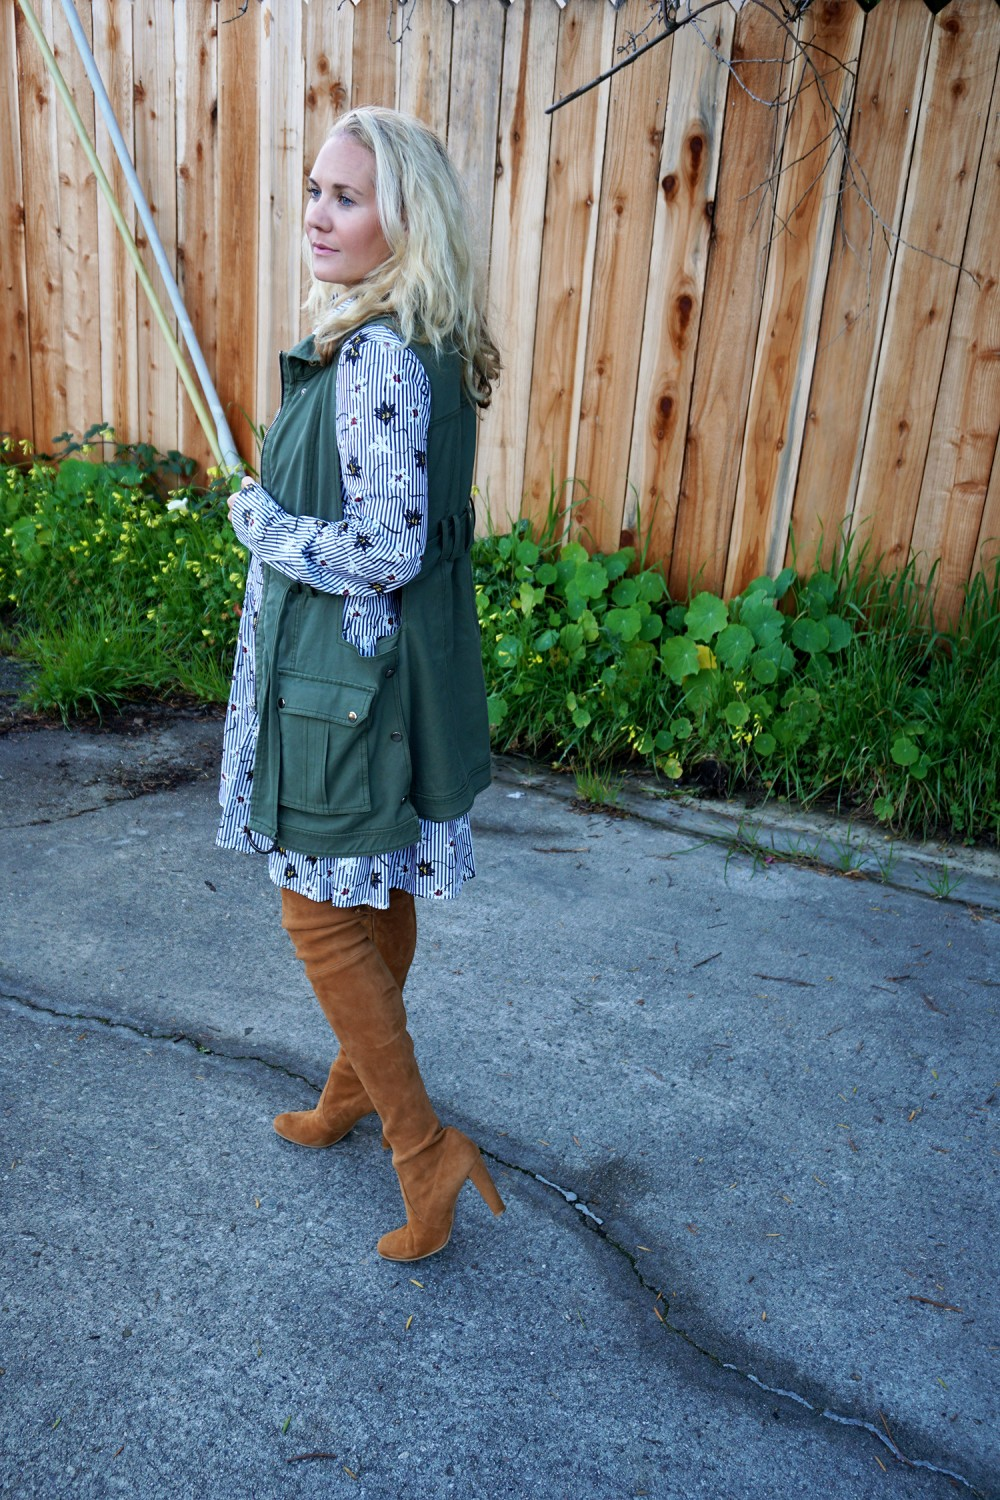 Opening Ceremony Pinstripe and Floral Shirtdress-Spring Style-Outfit Inspiration-Bay Area Fashion Blogger-Stuart Weitzman-Highland Boots-Have Need Want 11